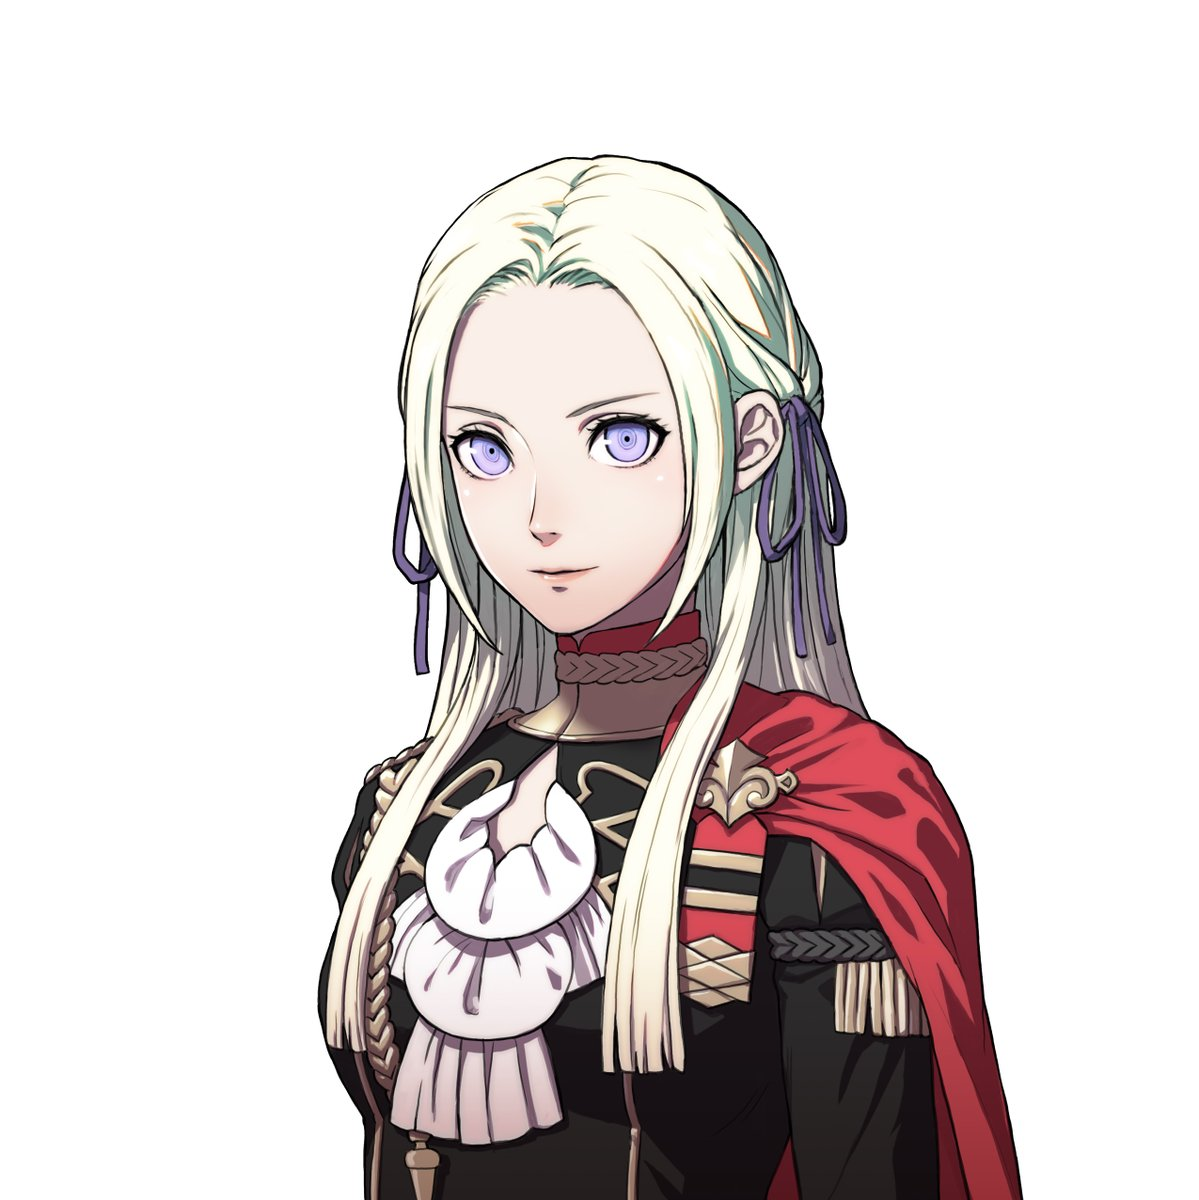 Fire Emblem Three Houses Guide - What Class For Each Student